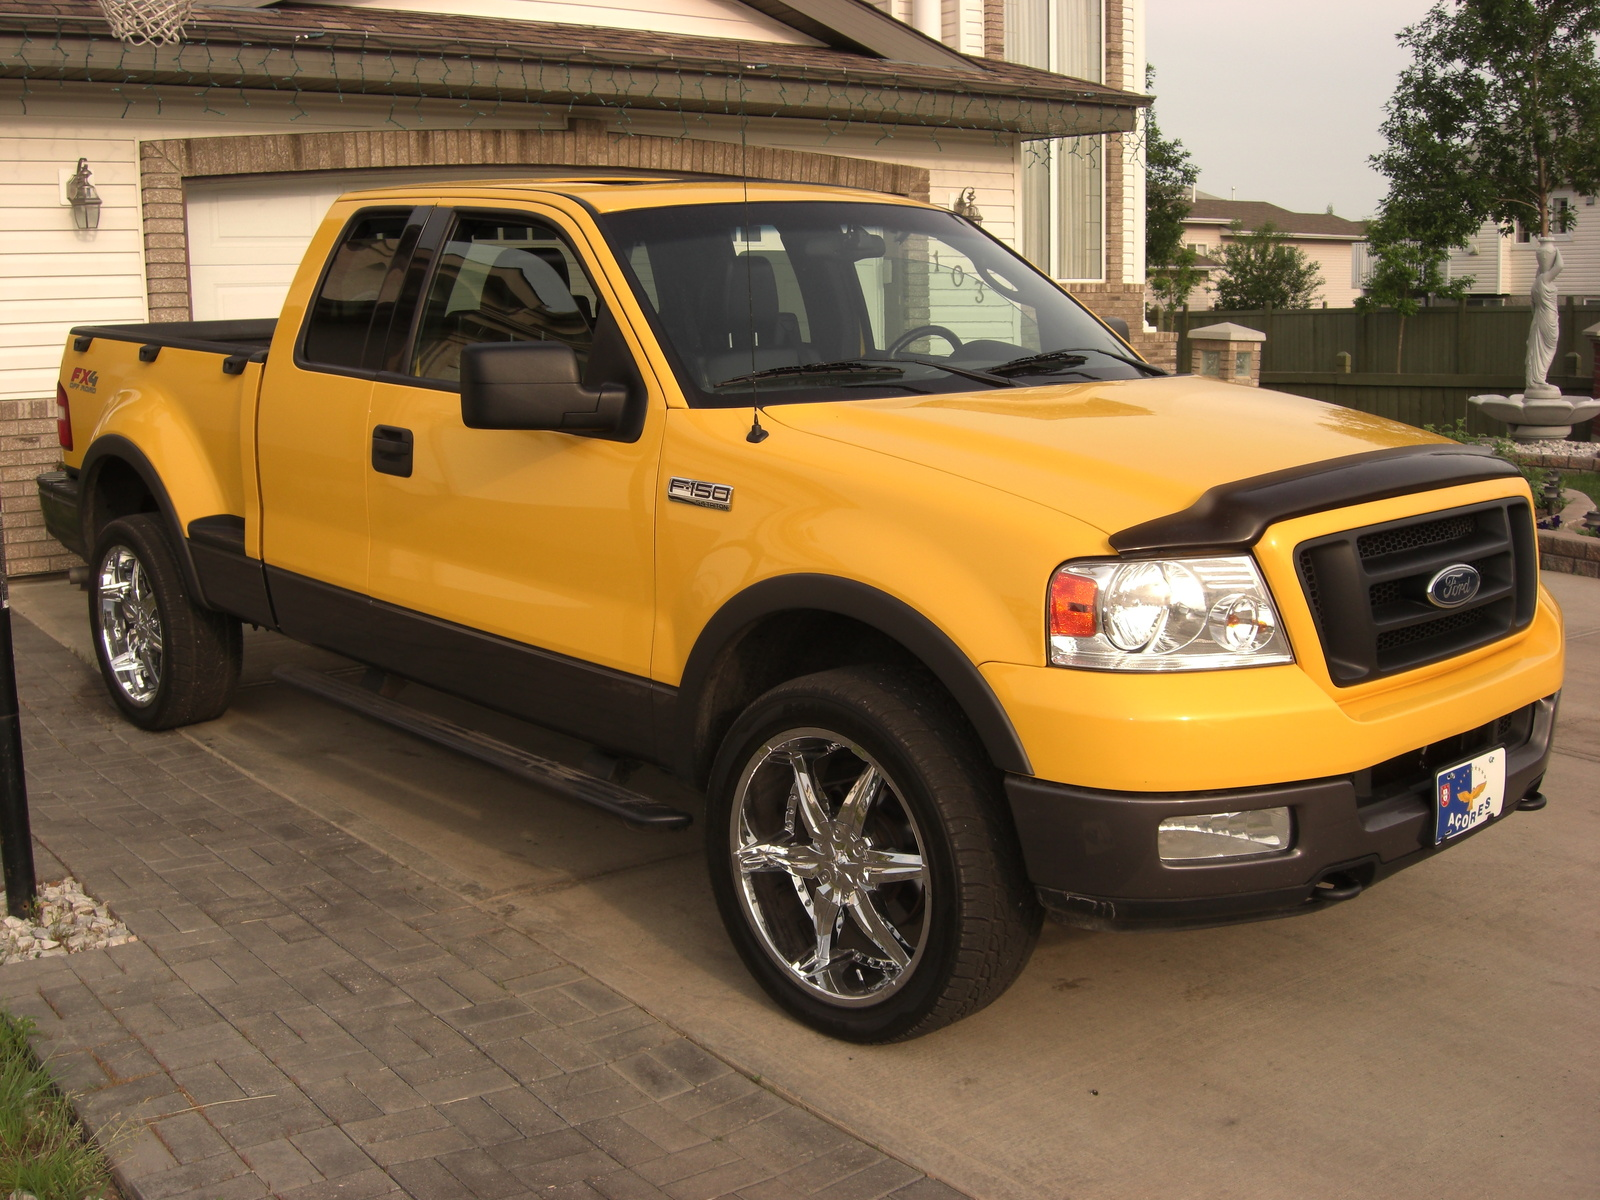 Picture of 2004 Ford F-150 FX4 Ext. Cab Flareside 4WD, exterior